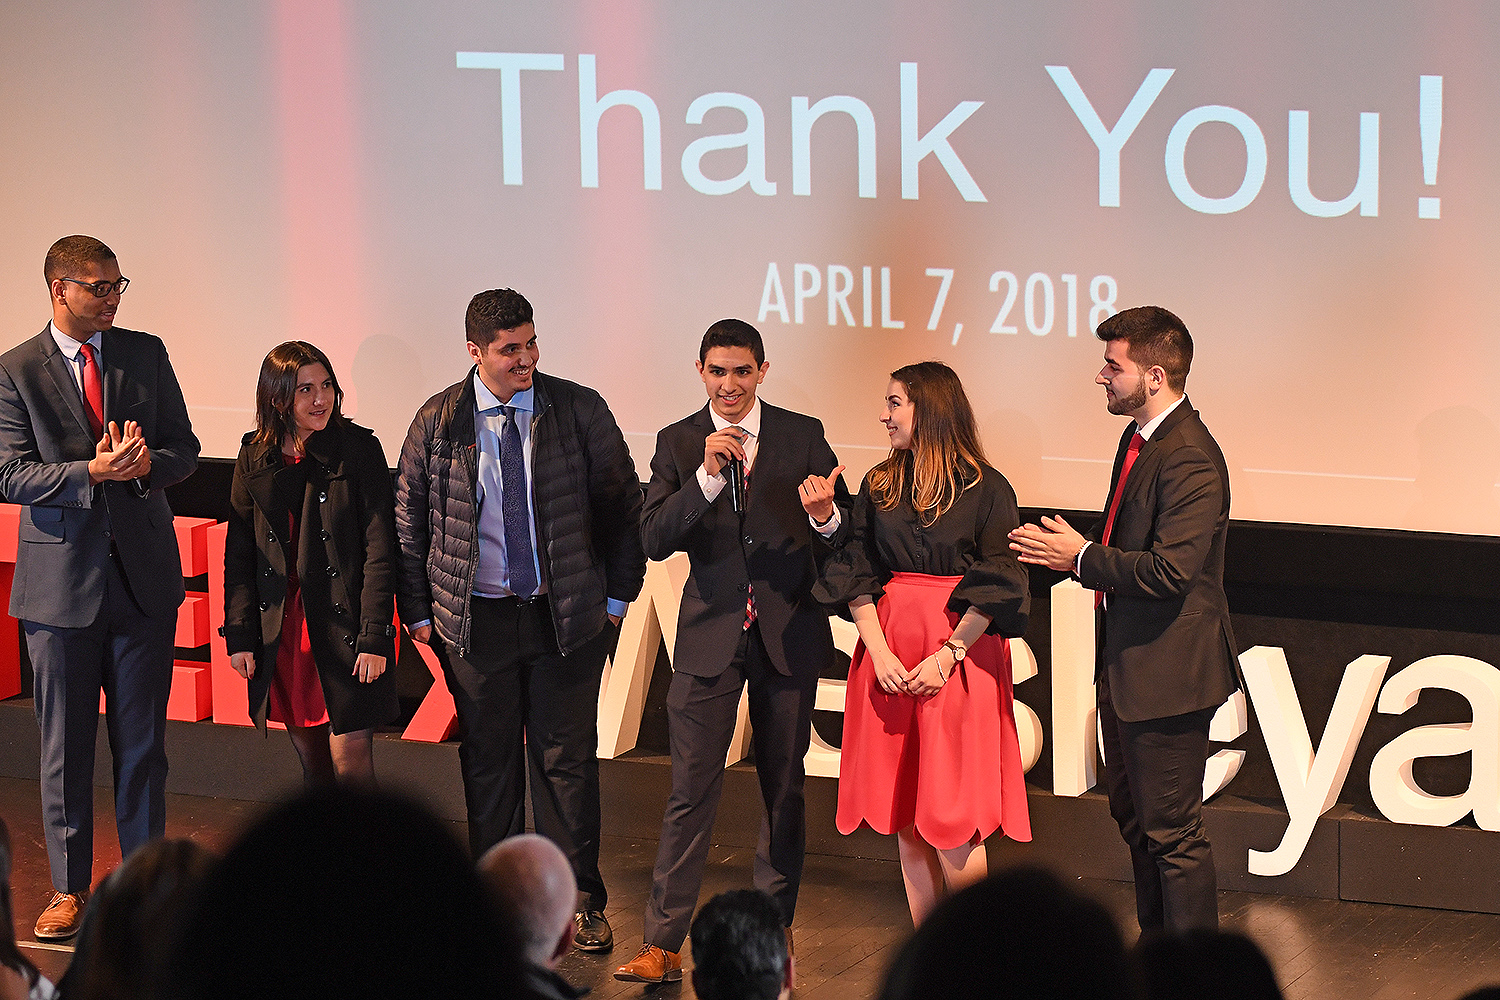 At left, Anthony Price '20, Zoe Reifel '21, Thafir Elzofri '19, Eunes Harun '20, Melisa Olgun '20 and Leo Merturi '20 thank the audience for attending Wesleyan's TEDxWesleyanU event on April 7.